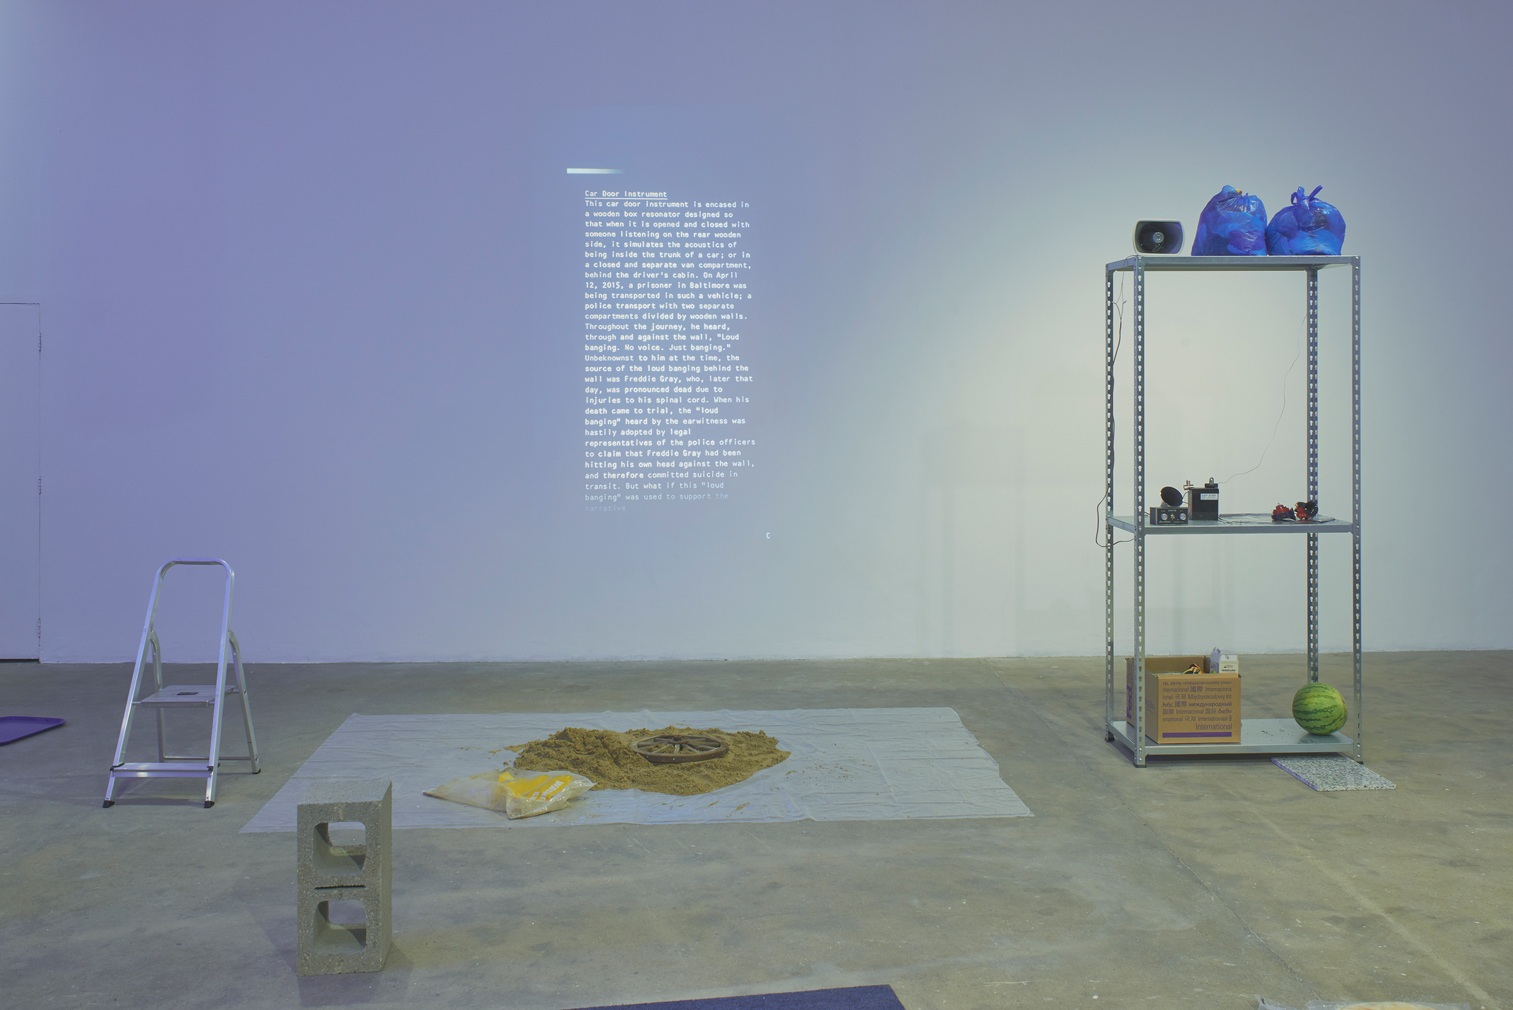 Lawrence Abu Hamdan, Earwitness Inventory (2018). Commissioned and produced by Chisenhale Gallery, London in partnership with: Witte de With Center for Contemporary Art, Rotterdam; Contemporary Art Museum St. Louis; and Institute of Modern Art, Brisbane. Courtesy of the artist. Photo: Andy Keate.